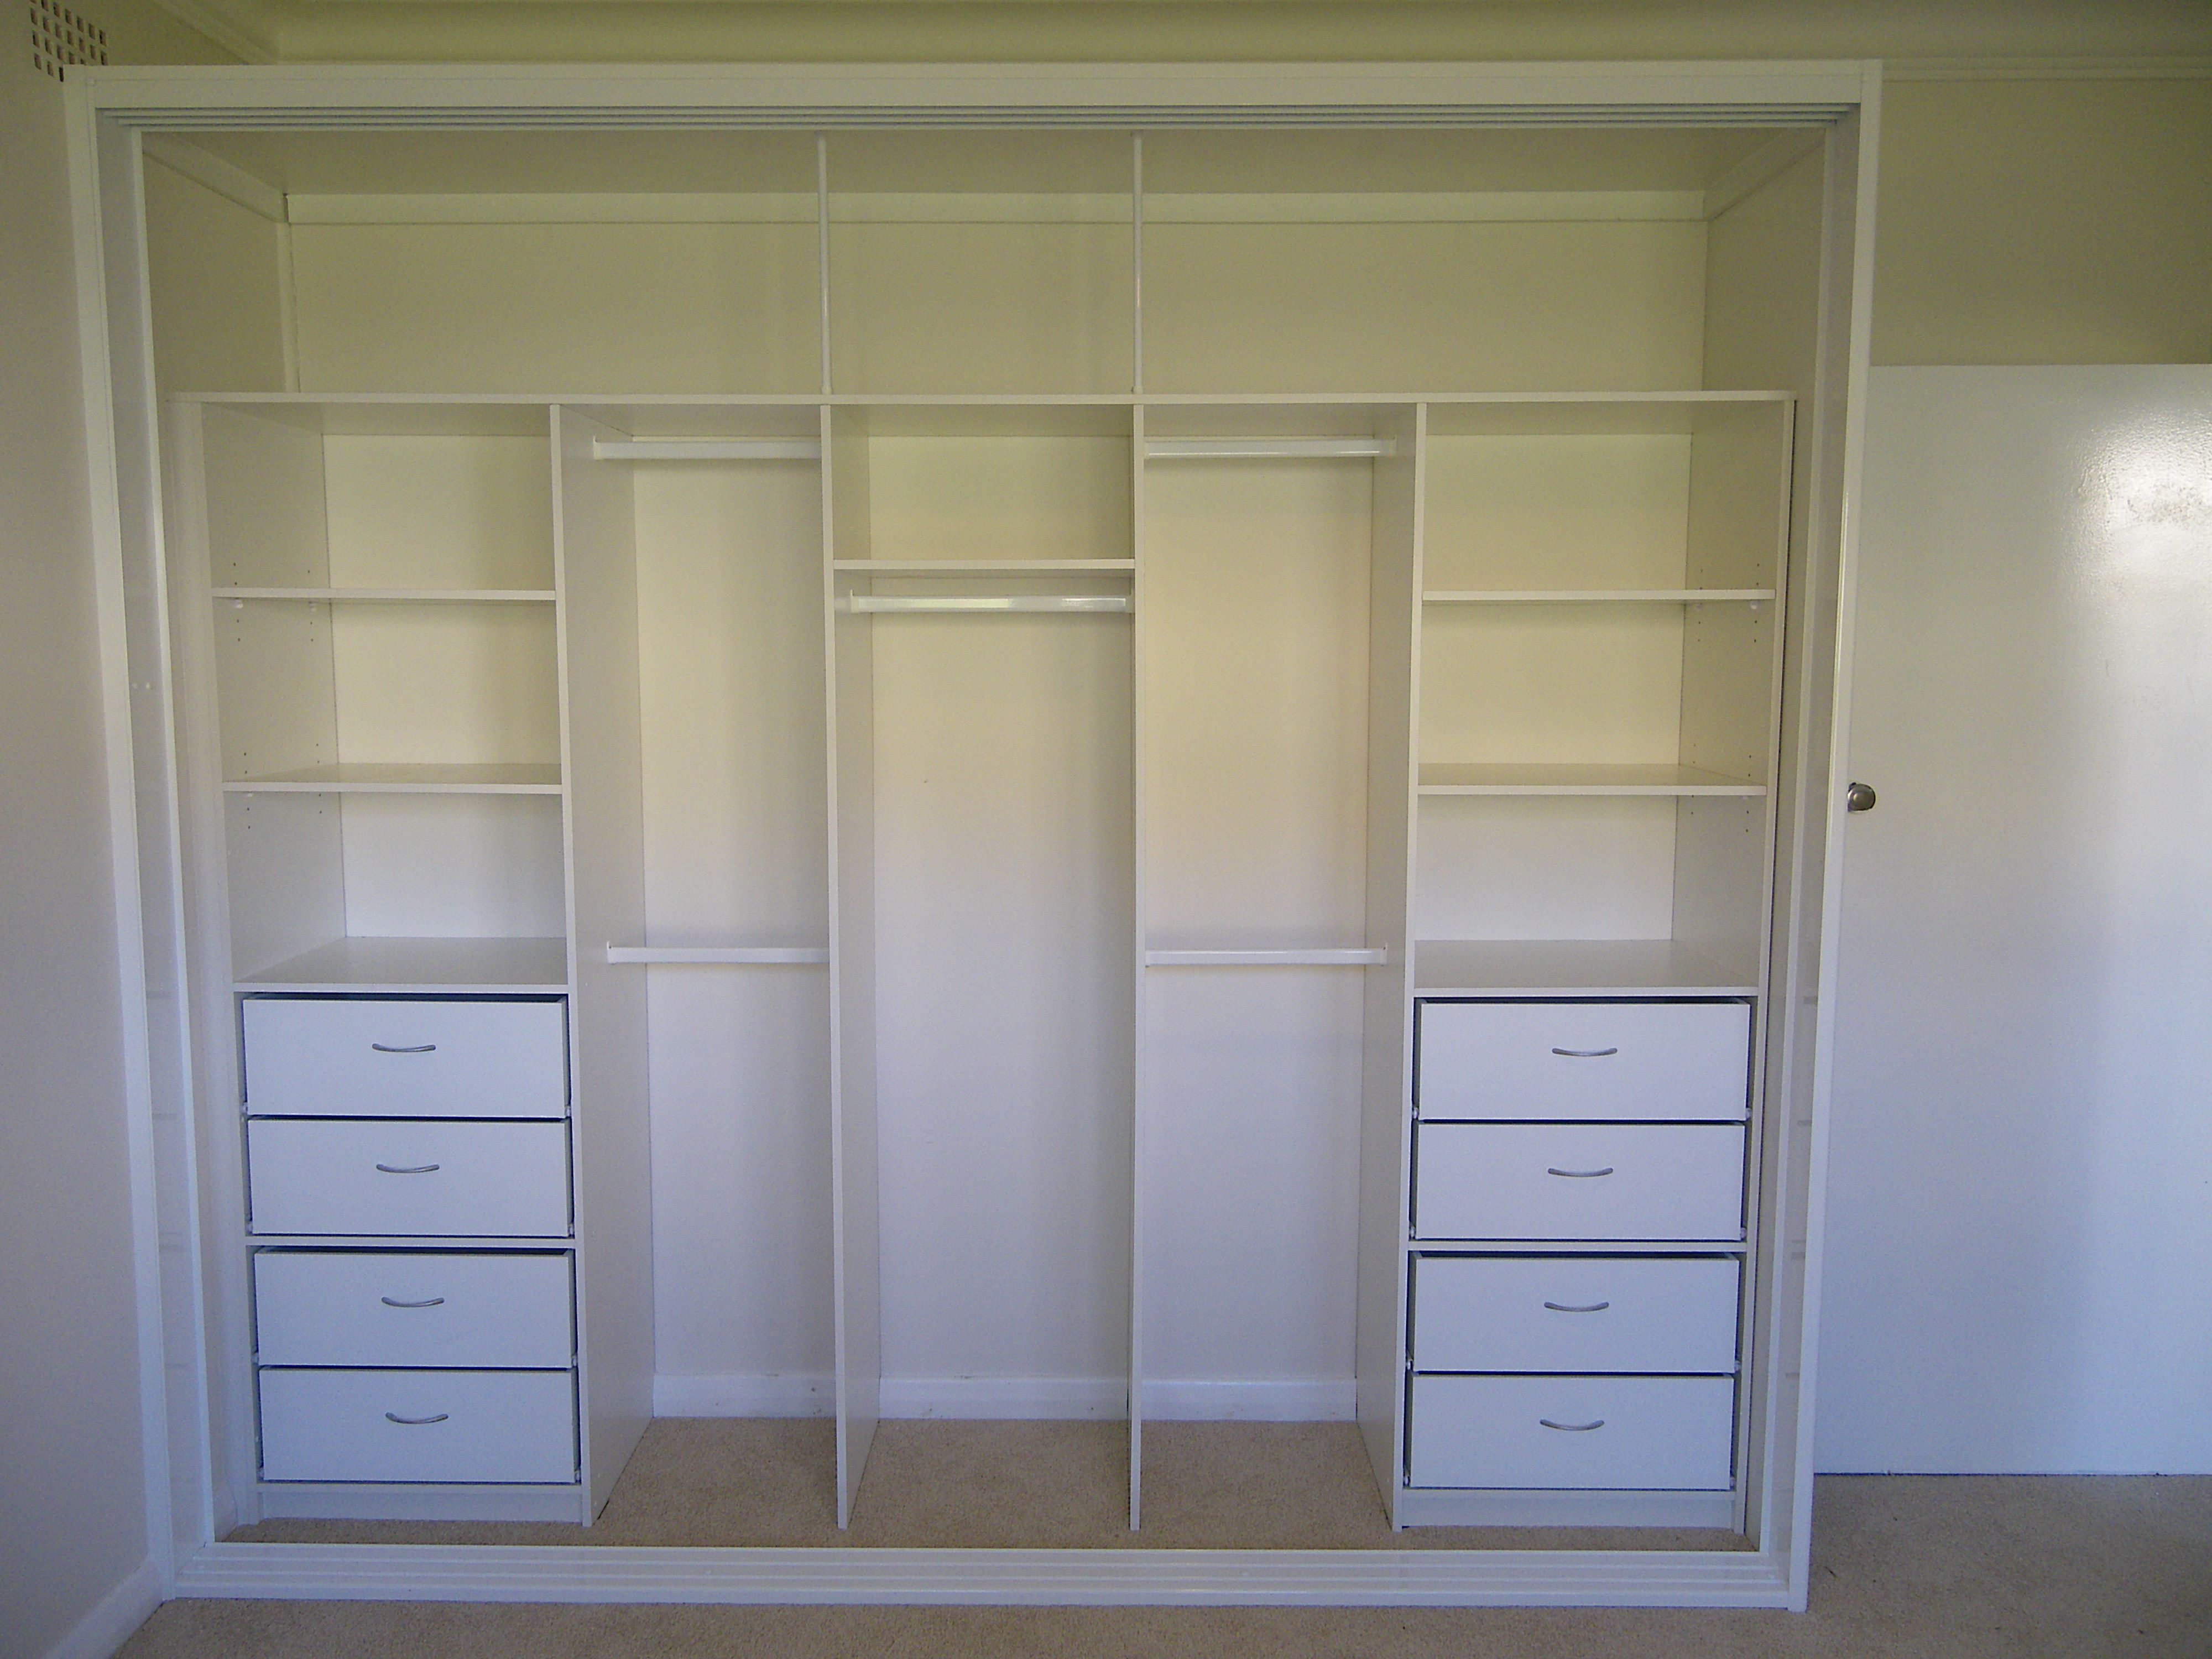 built in wardrobes Google Search Ideas for home Pinterest